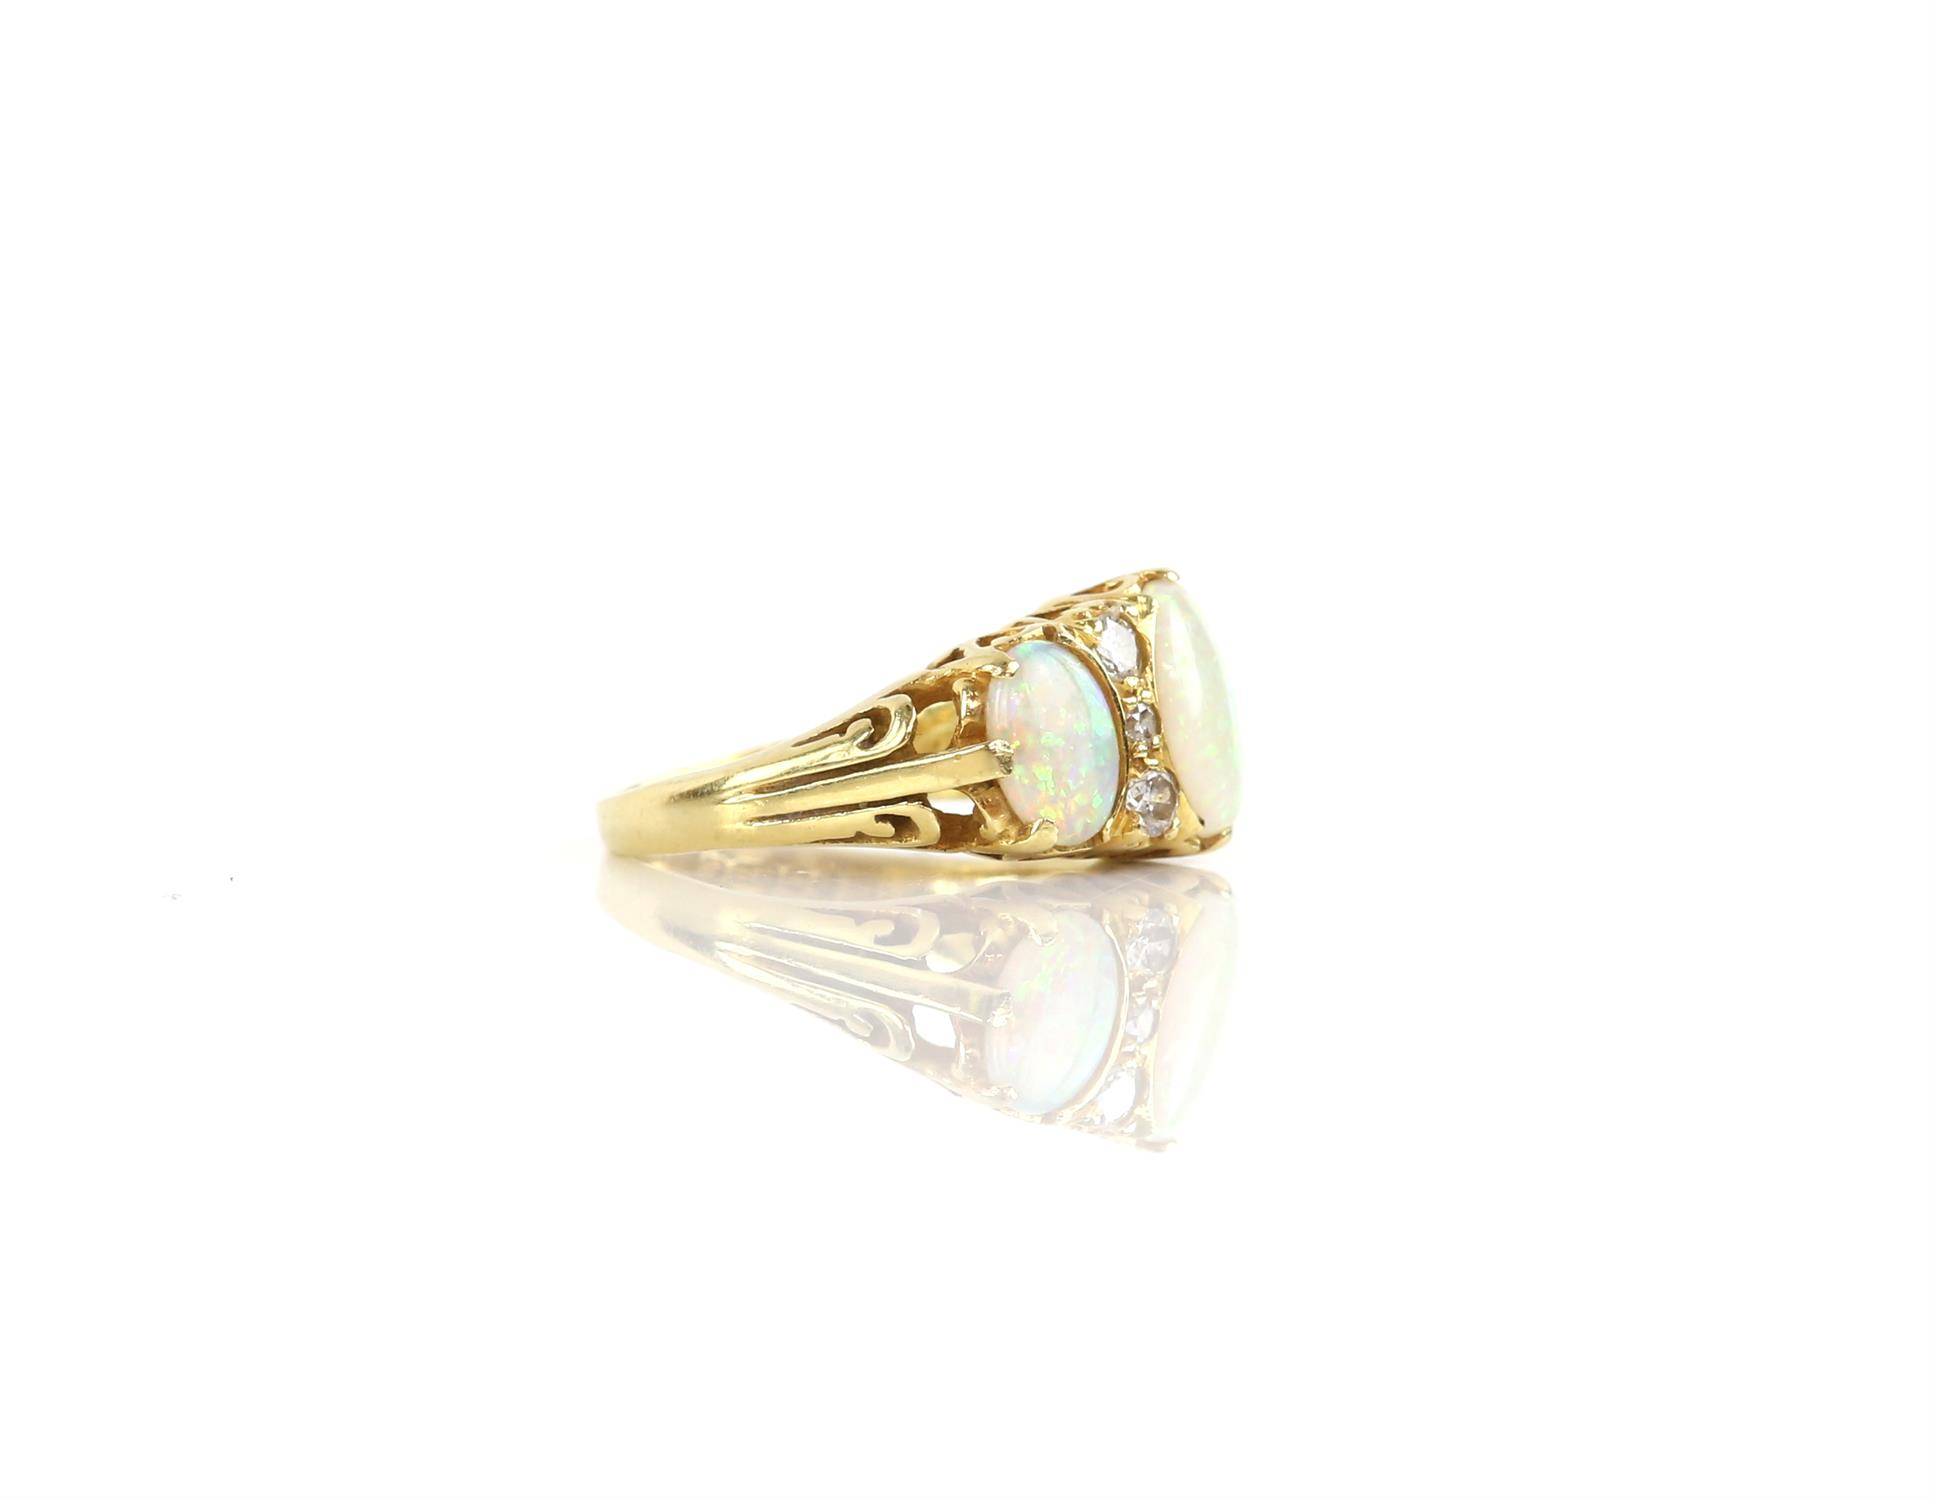 Vintage opal and diamond ring, the centre opal is a synthetic, the side stones are natural, - Image 2 of 3